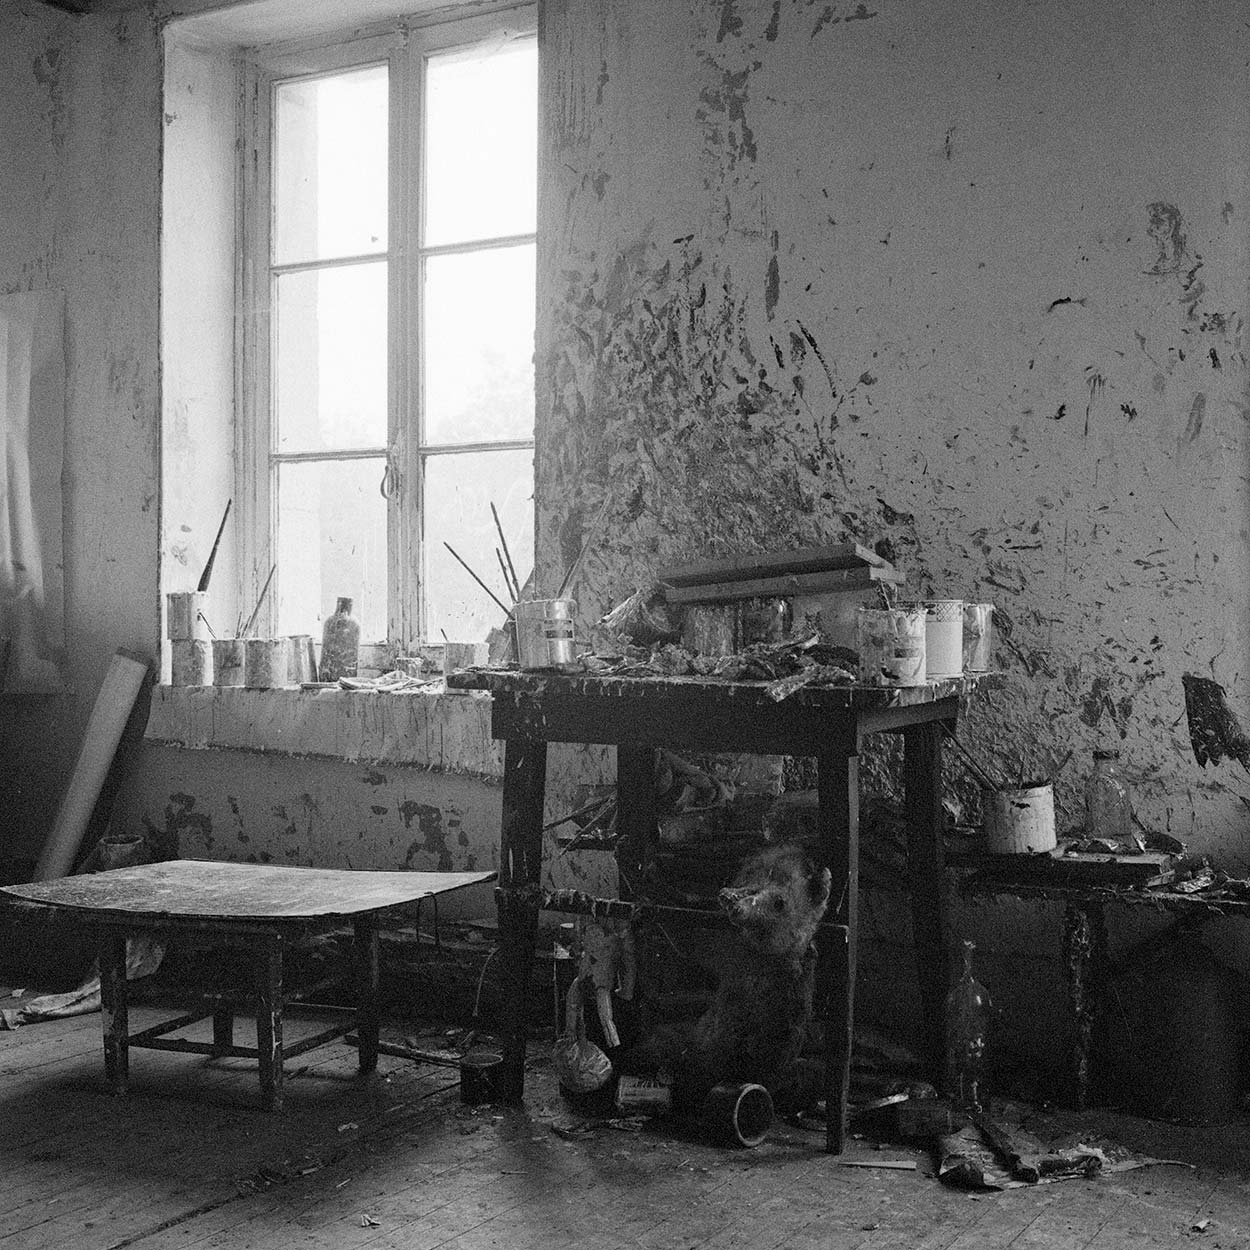 Dado's studio at Hérouval in the early 1960's